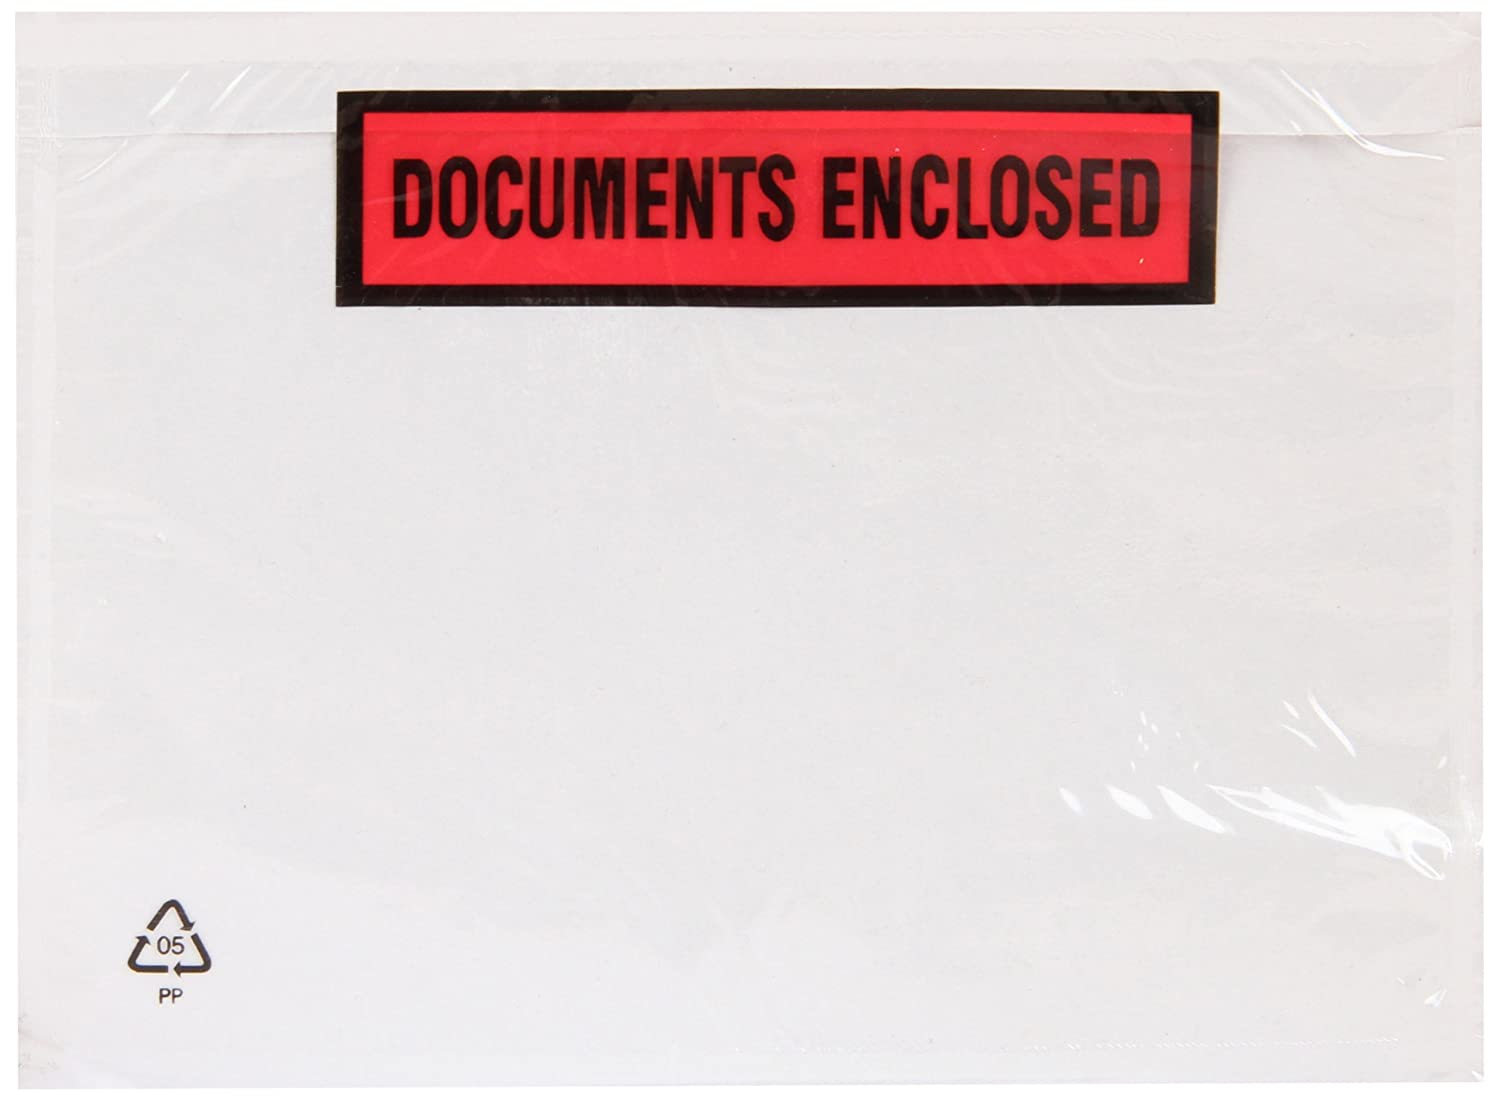 Clear Pack of 500 PDE52 Blake Purely Packaging C4 328 x 245 mm Printed Documents Enclosed Wallet Envelopes Peel /& Seal